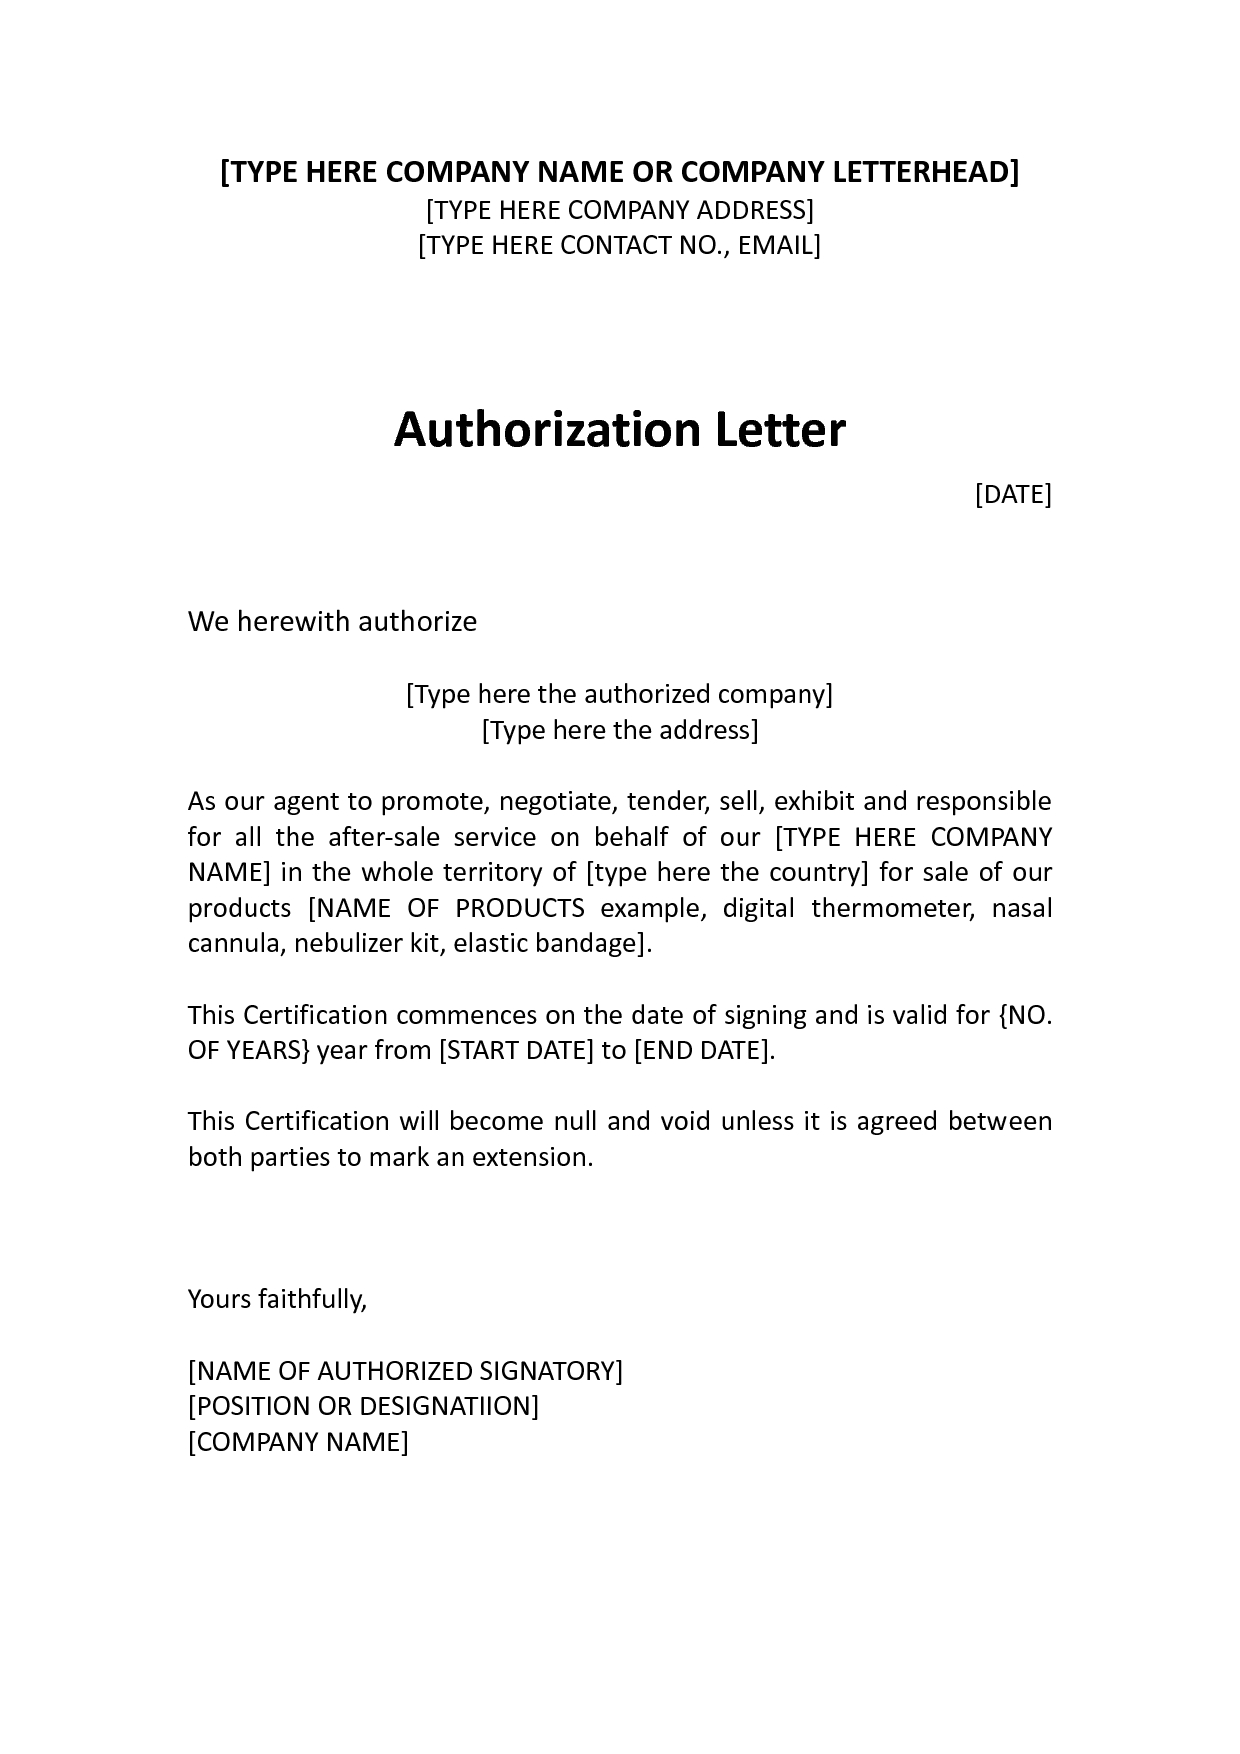 Sales Letter Template Promoting A Service - Authorization Distributor Letter Sample Distributor Dealer